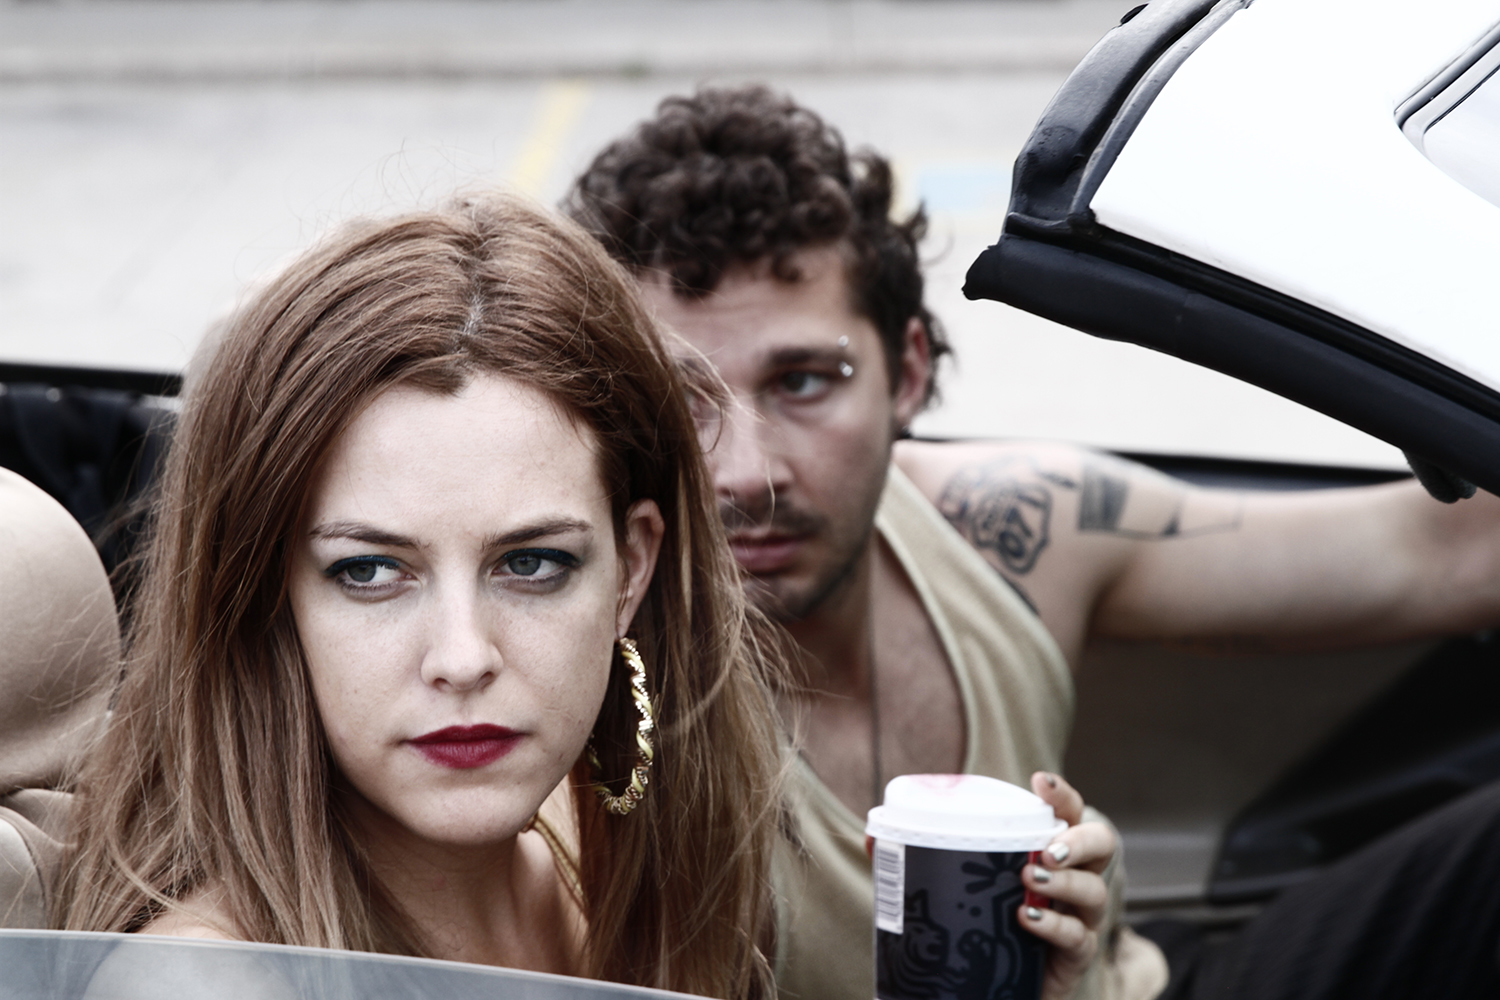 The den mother: Krystal (Riley Keough) is a petty tyrant whose control extends to keeping Jake (Shia LaBeouf) as a toy boy at her beck and call.